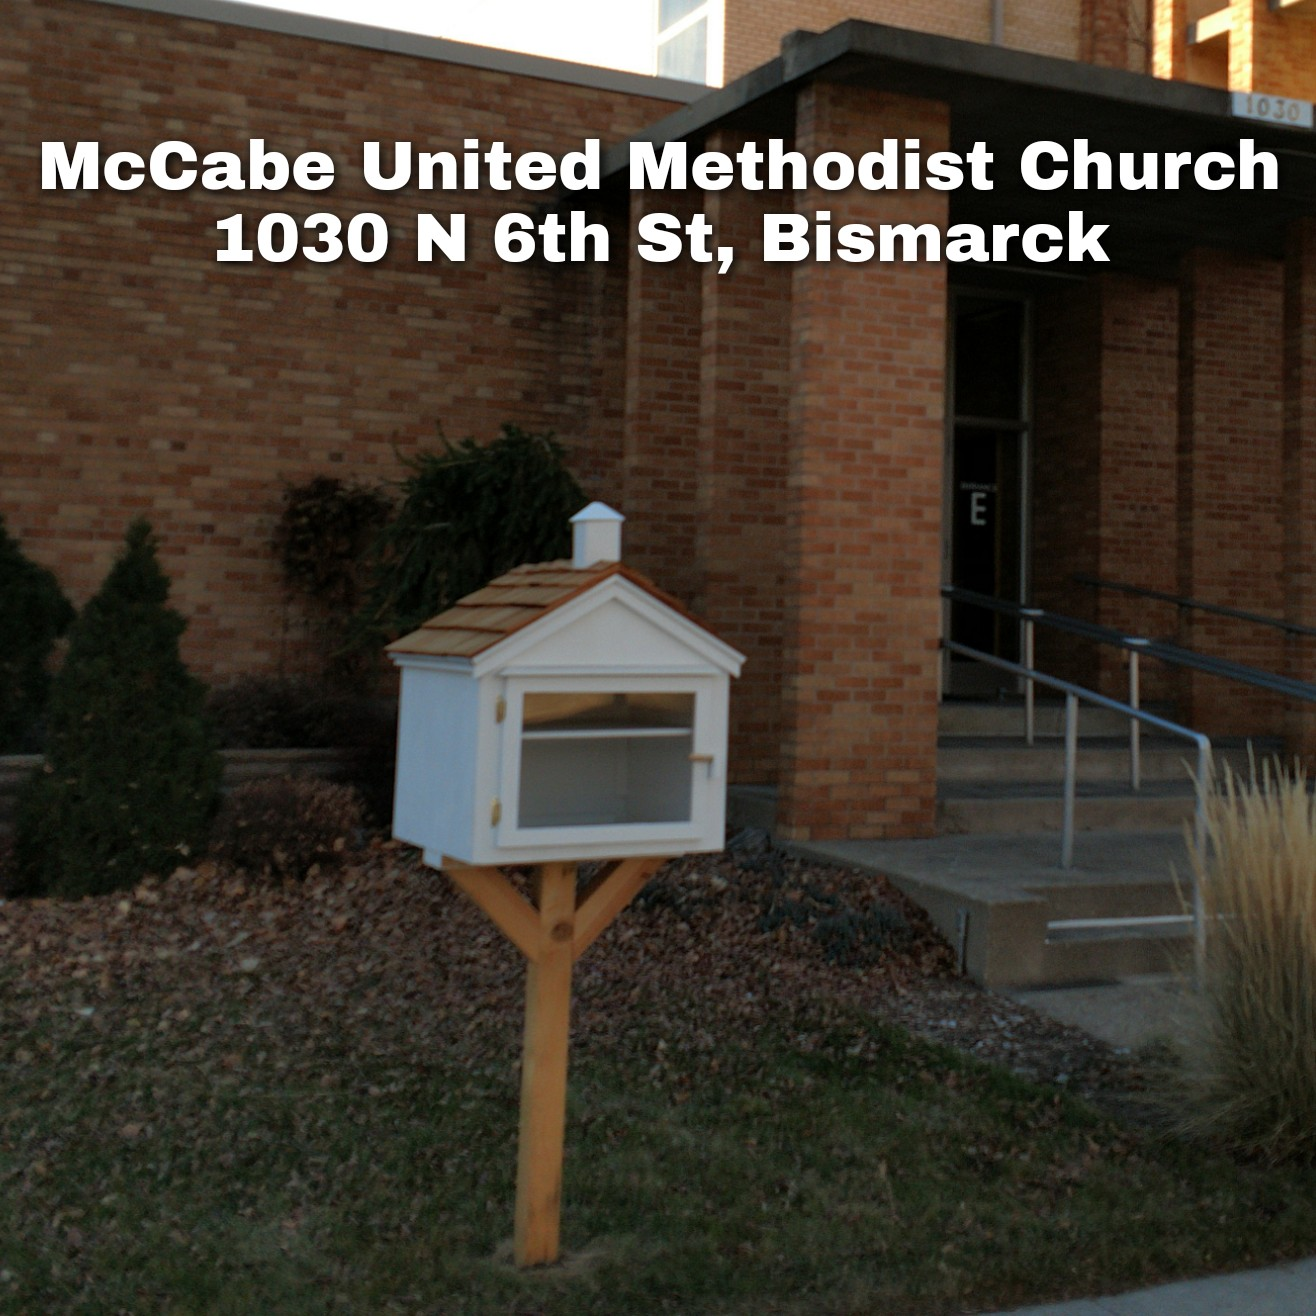 McCabe United Methodist Church Photo 1